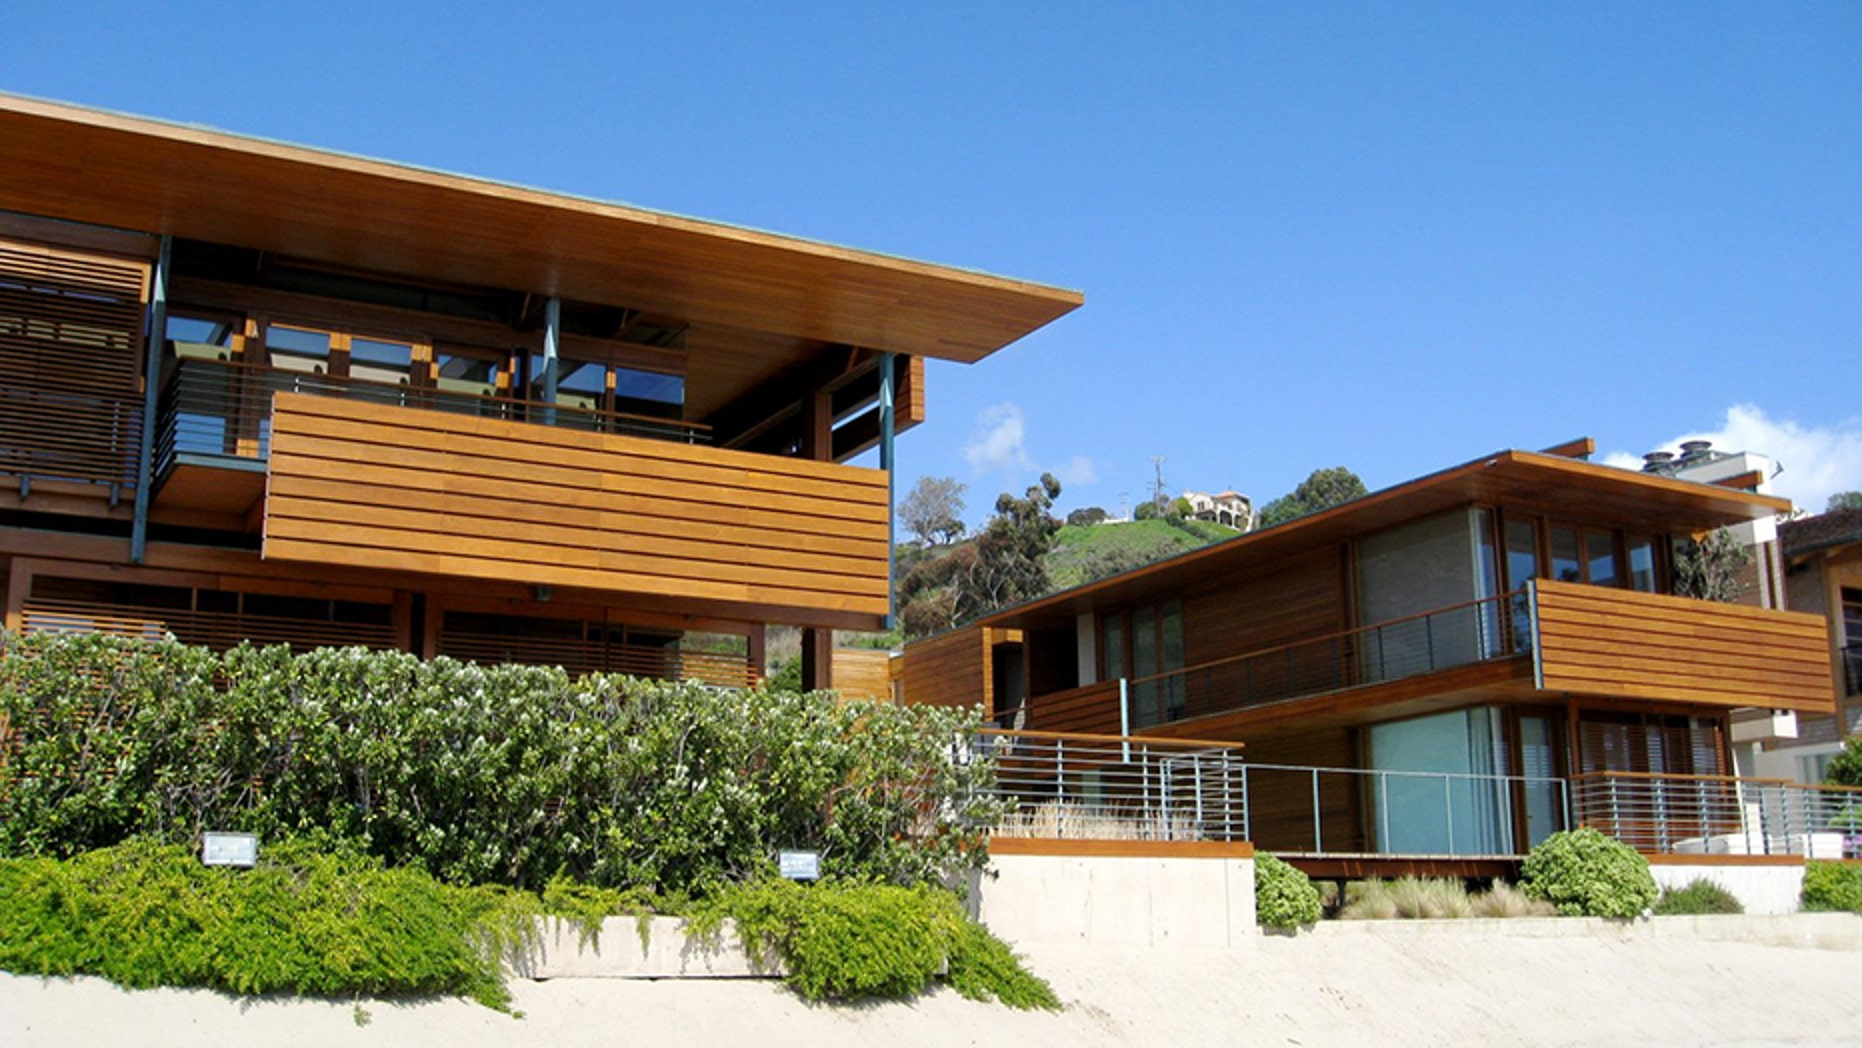 Malibu Beach To Sell For More Than Playboy Mansion Break Los